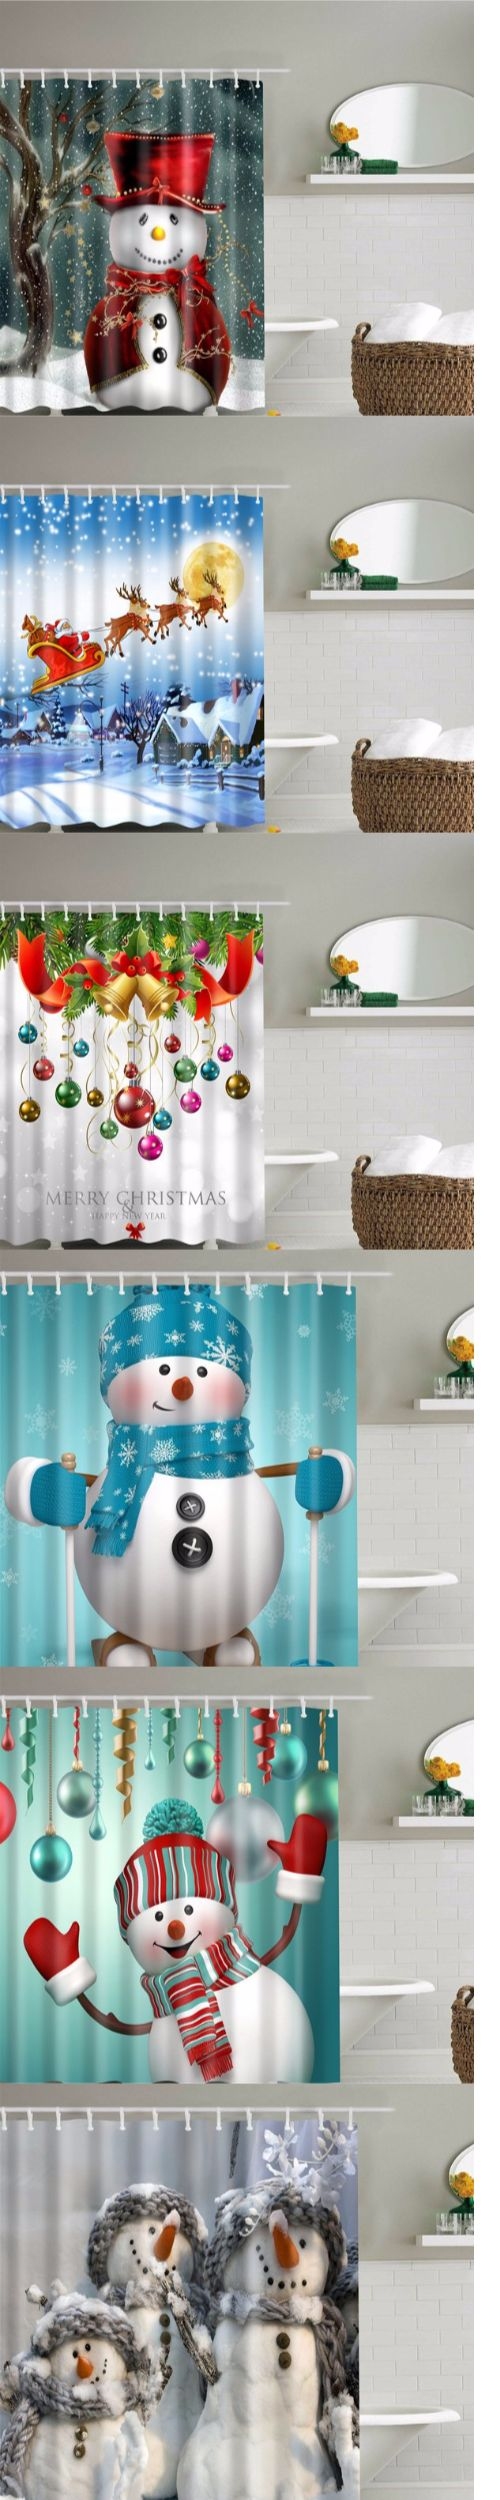 Household Home Decor Bed & Bath Bedding Kitchen Office Festive & Party Supplies Pet Supplies